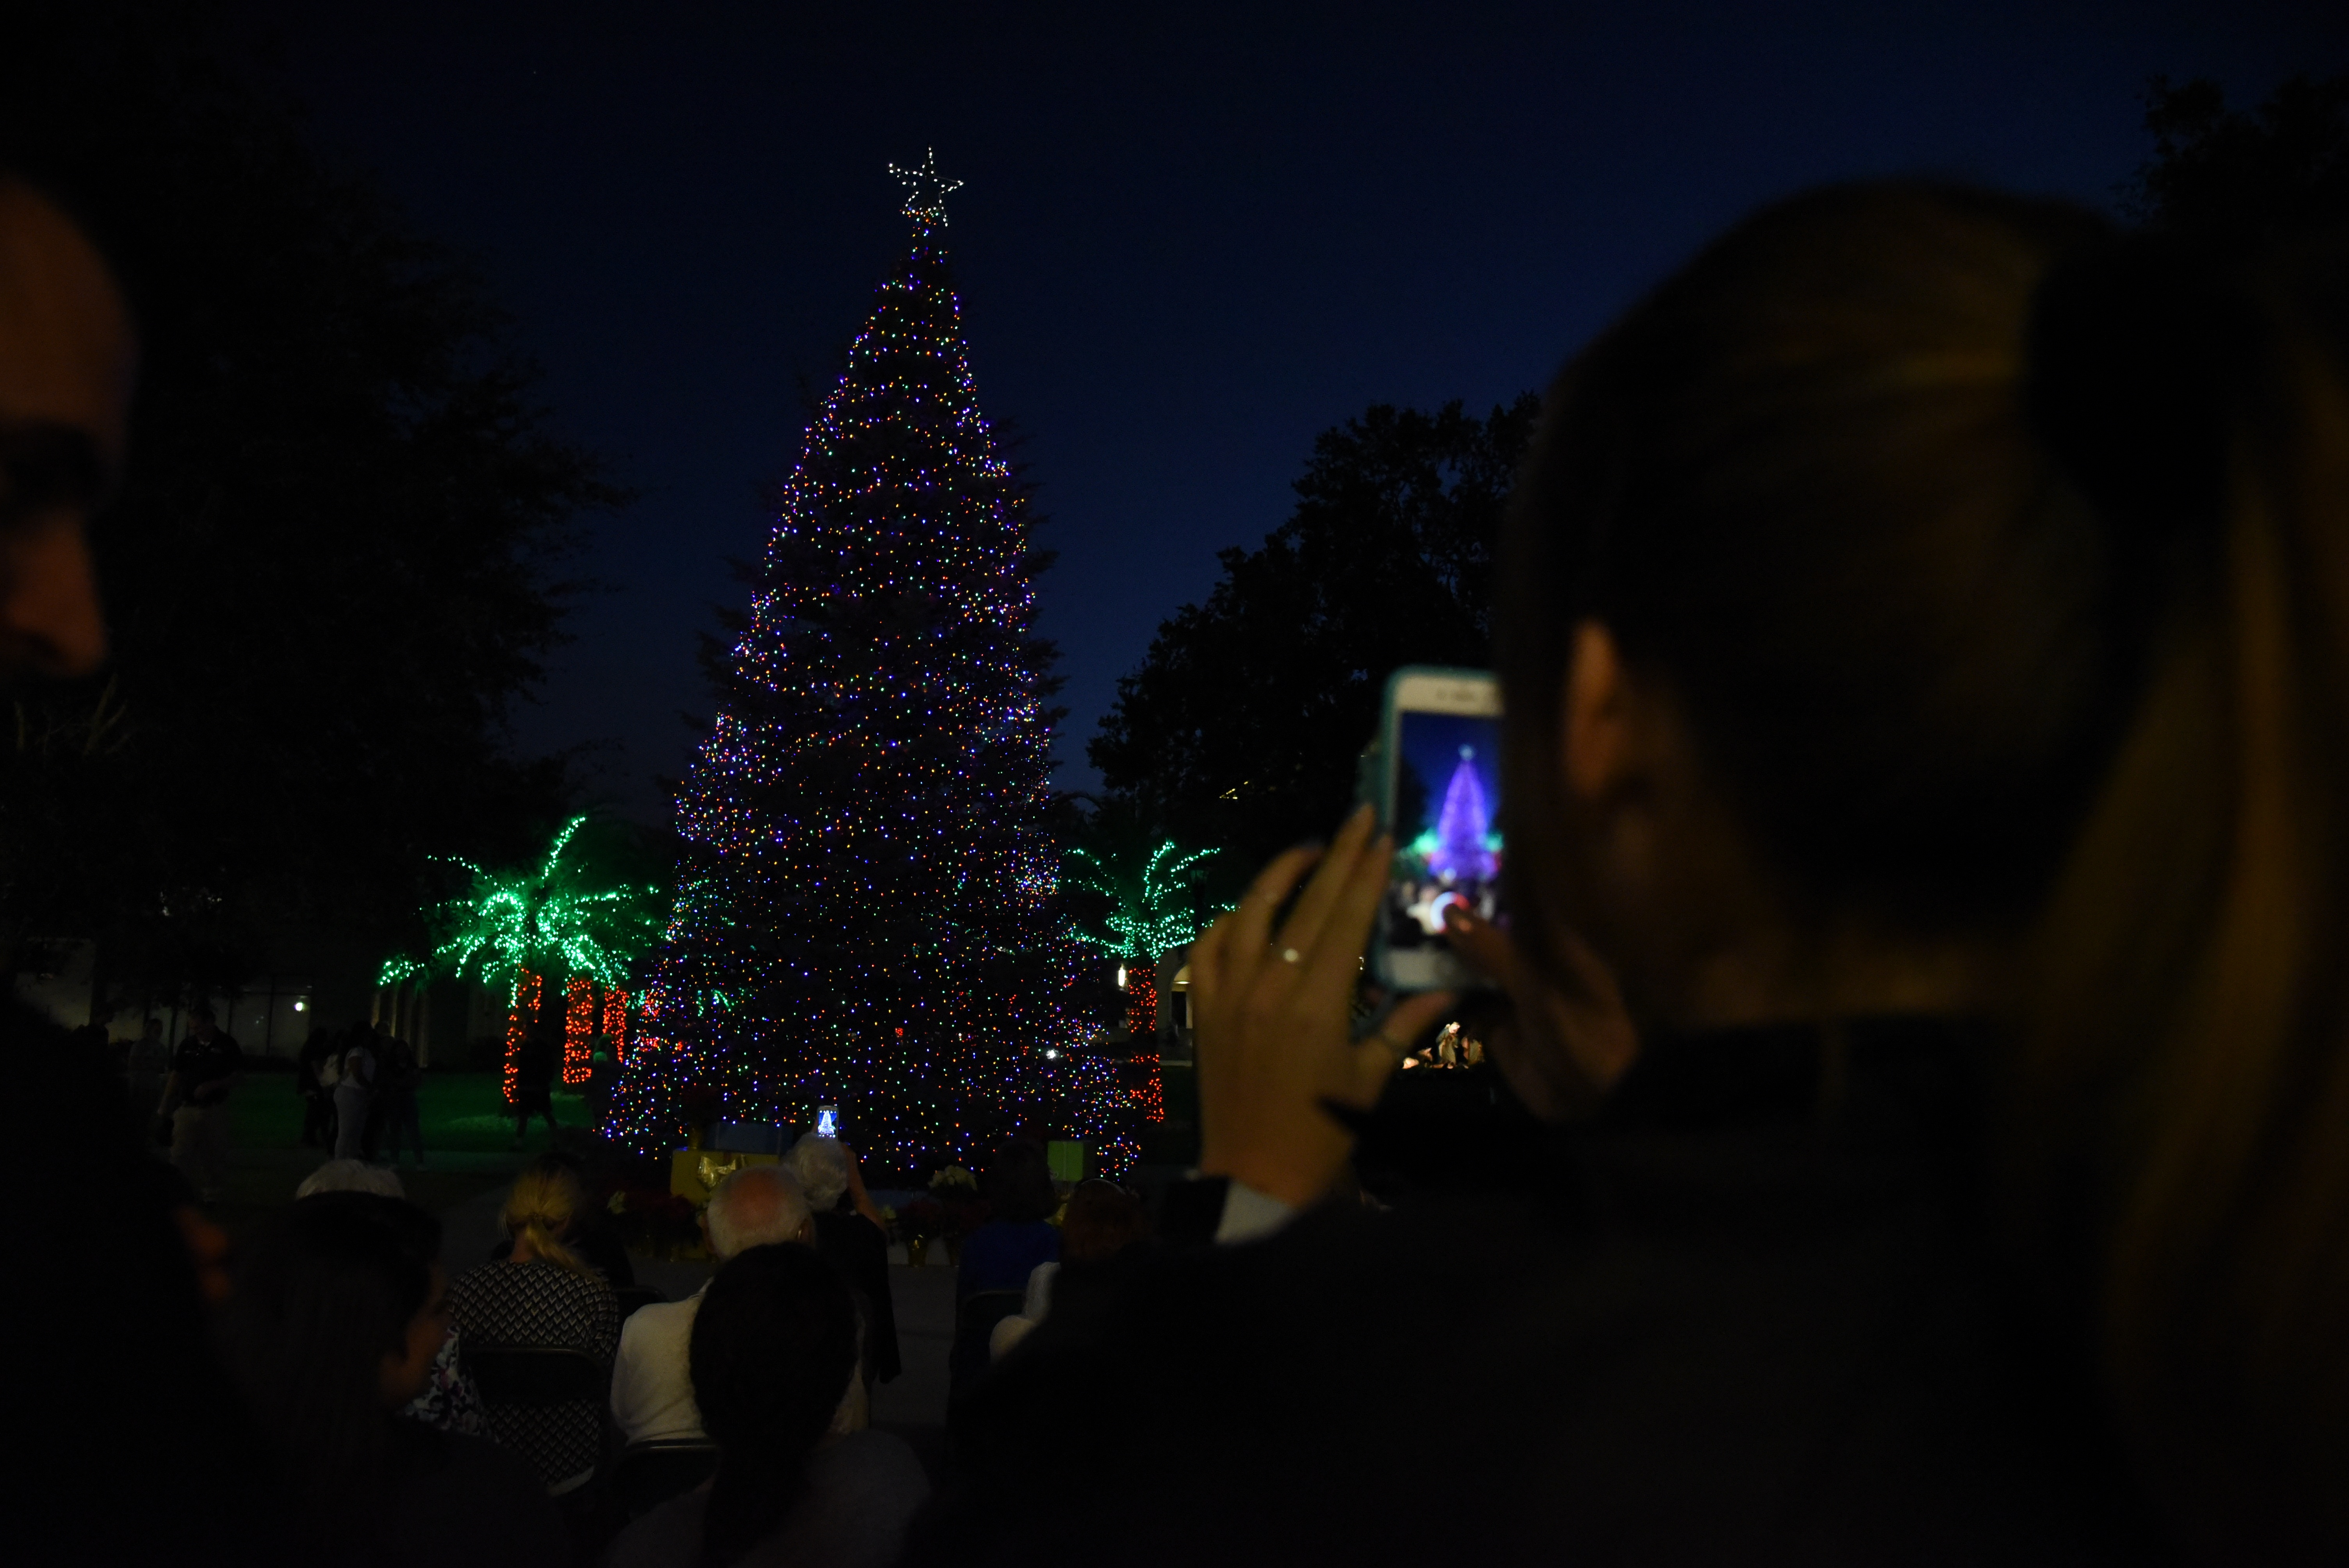 The lighting of the Christmas tree at Saint Leo's University Campus in 2017